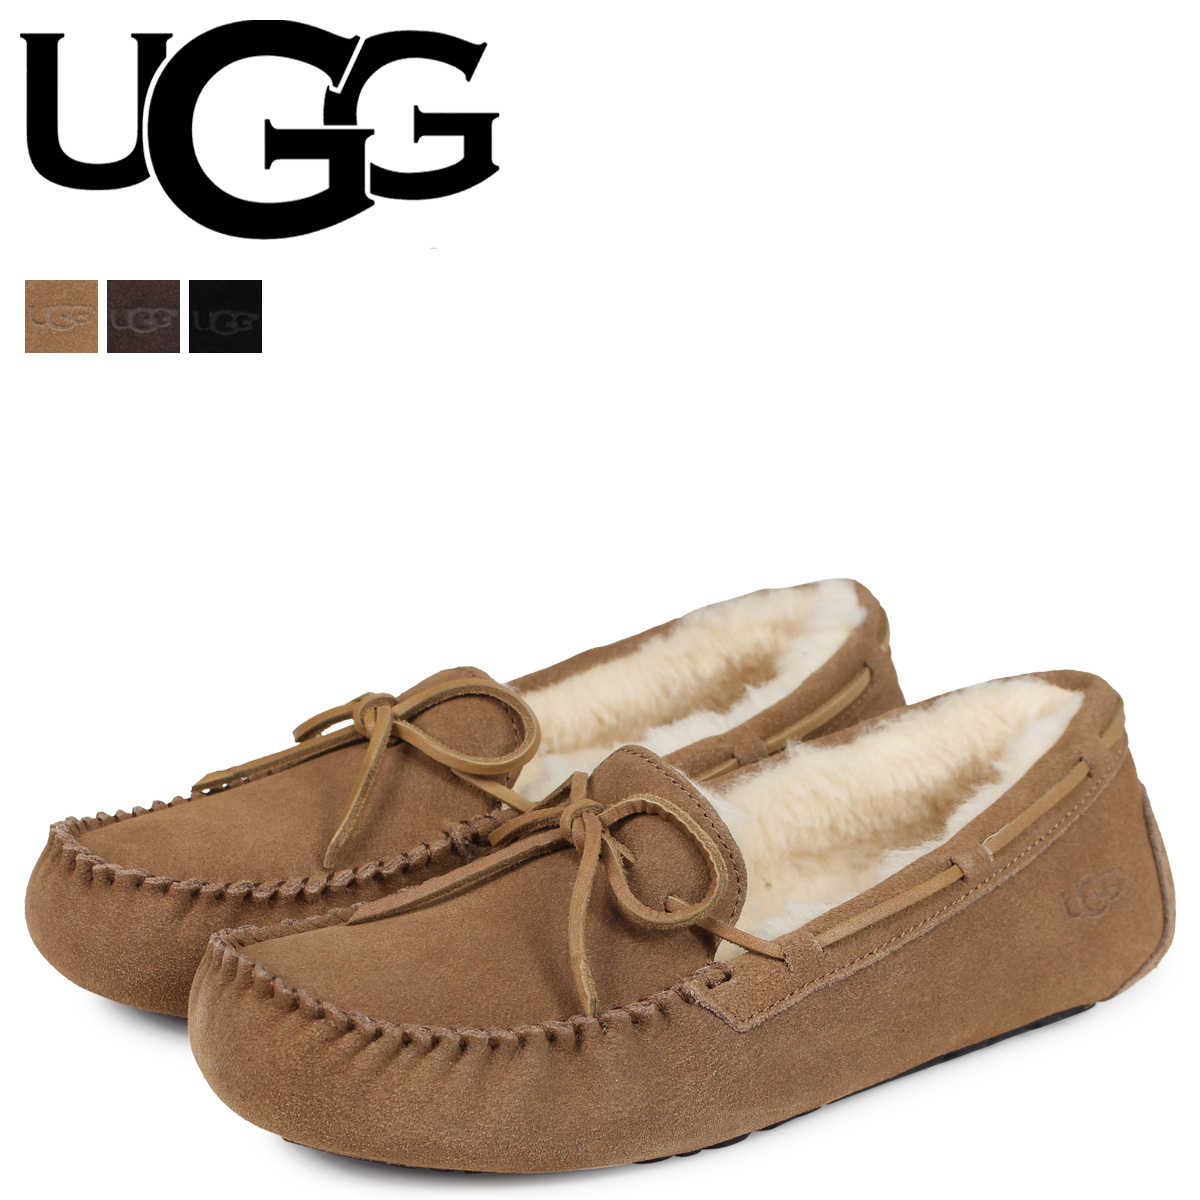 62447082dc3 アグ UGG moccasins men mouton shoes Olsen MENS OLSEN 1003390 black black  brown beige [the 7/6 additional arrival]